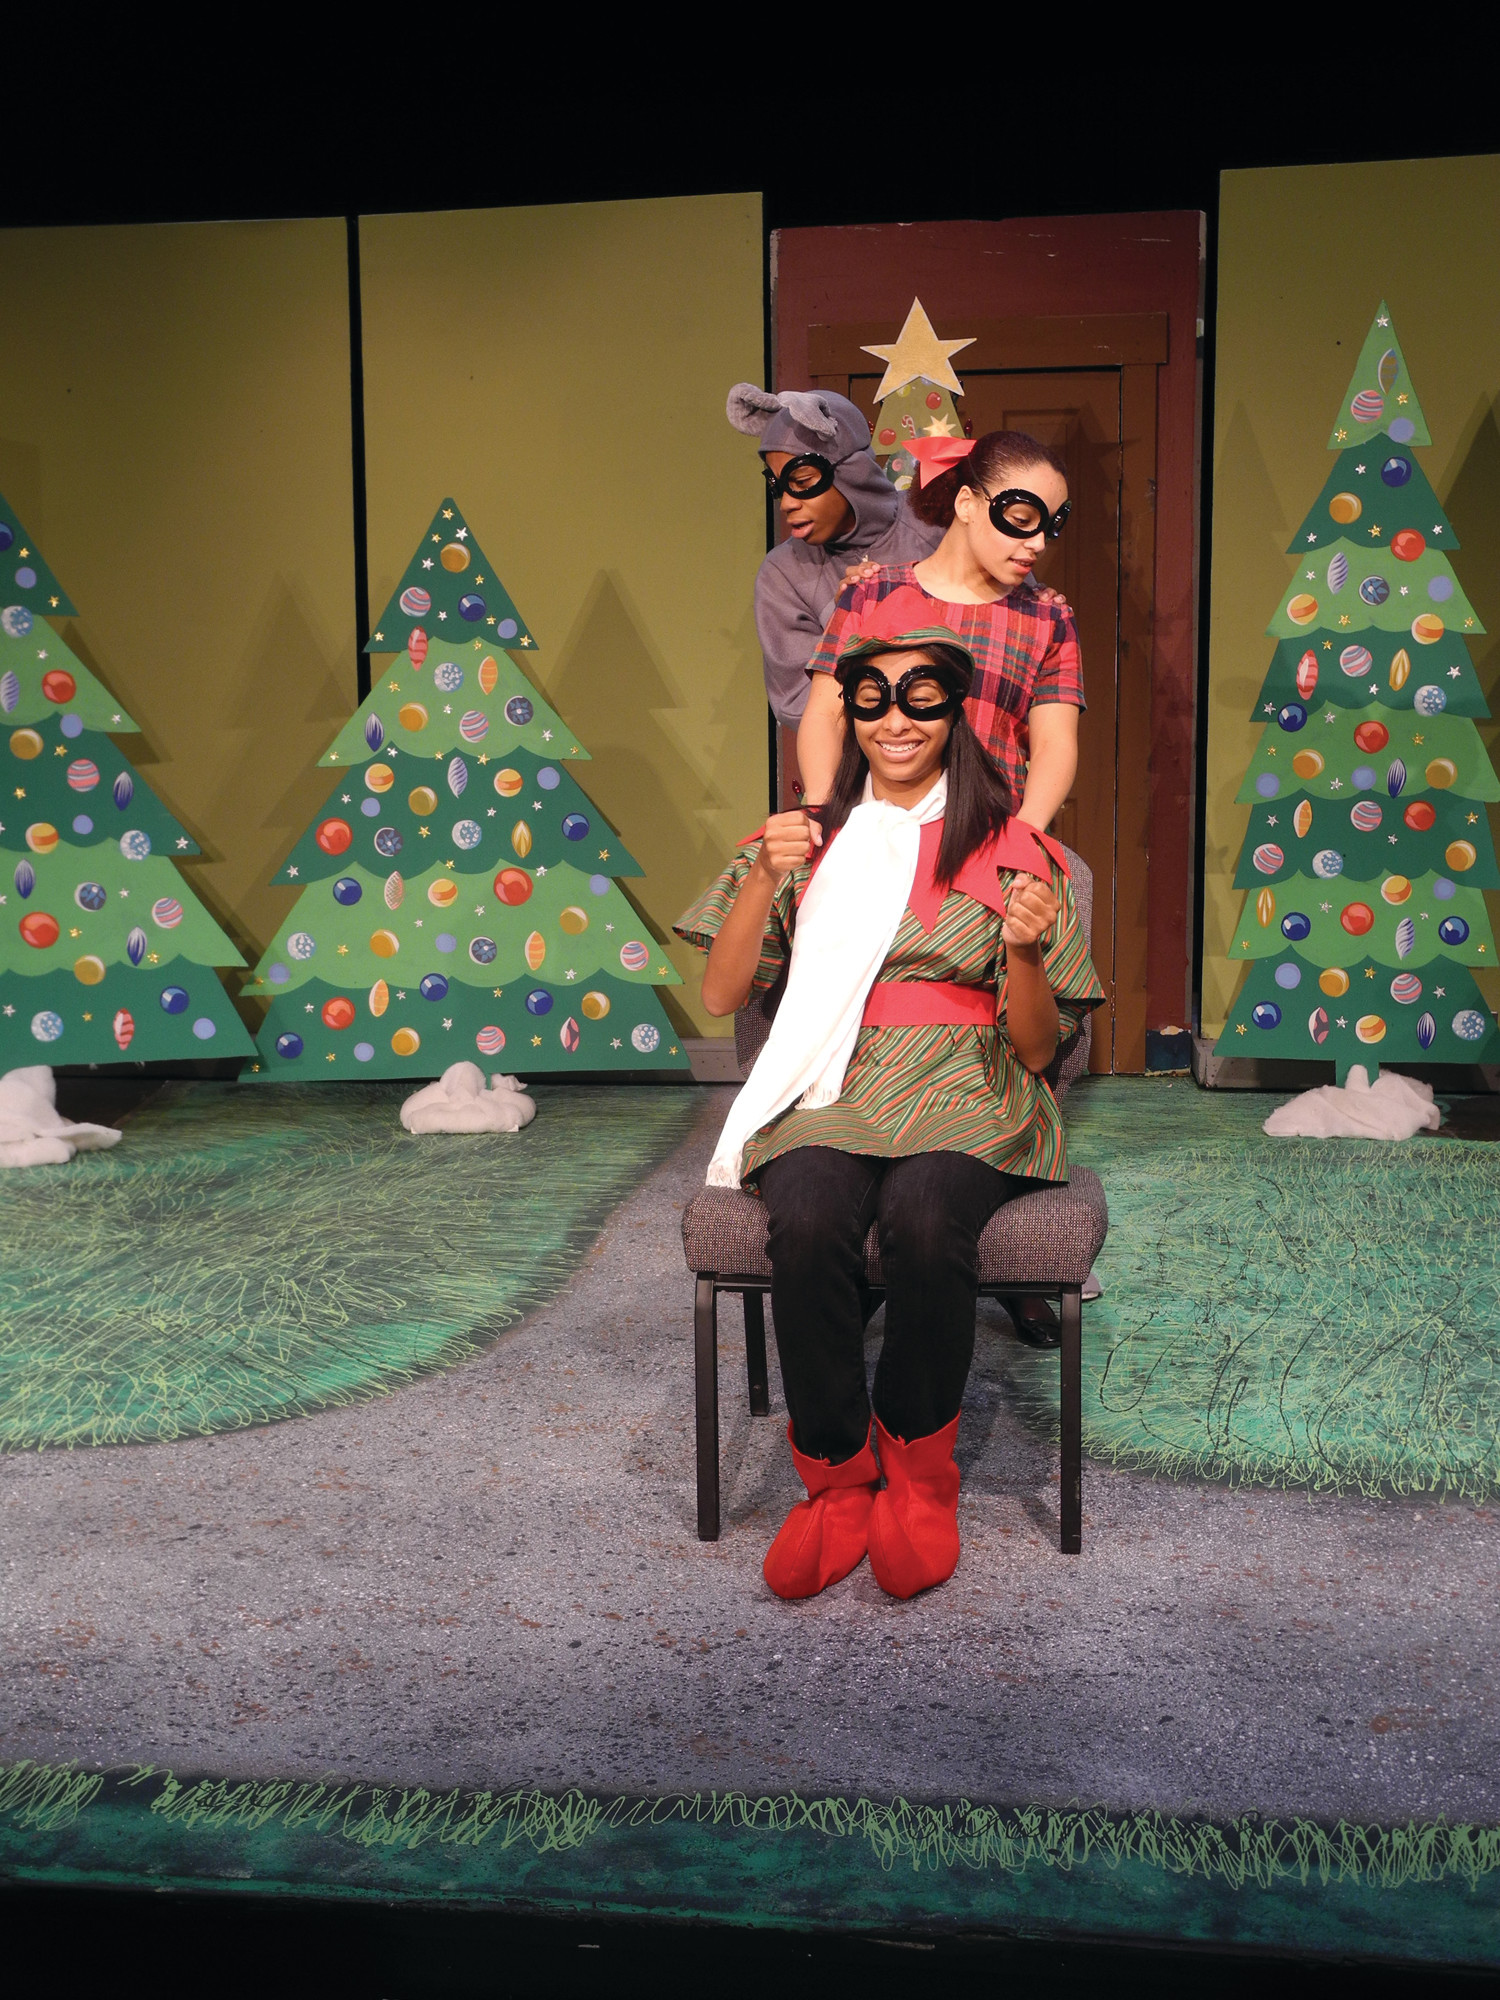 IVY MOORE / SPECIAL TO THE SUMTER ITEMFrom top,